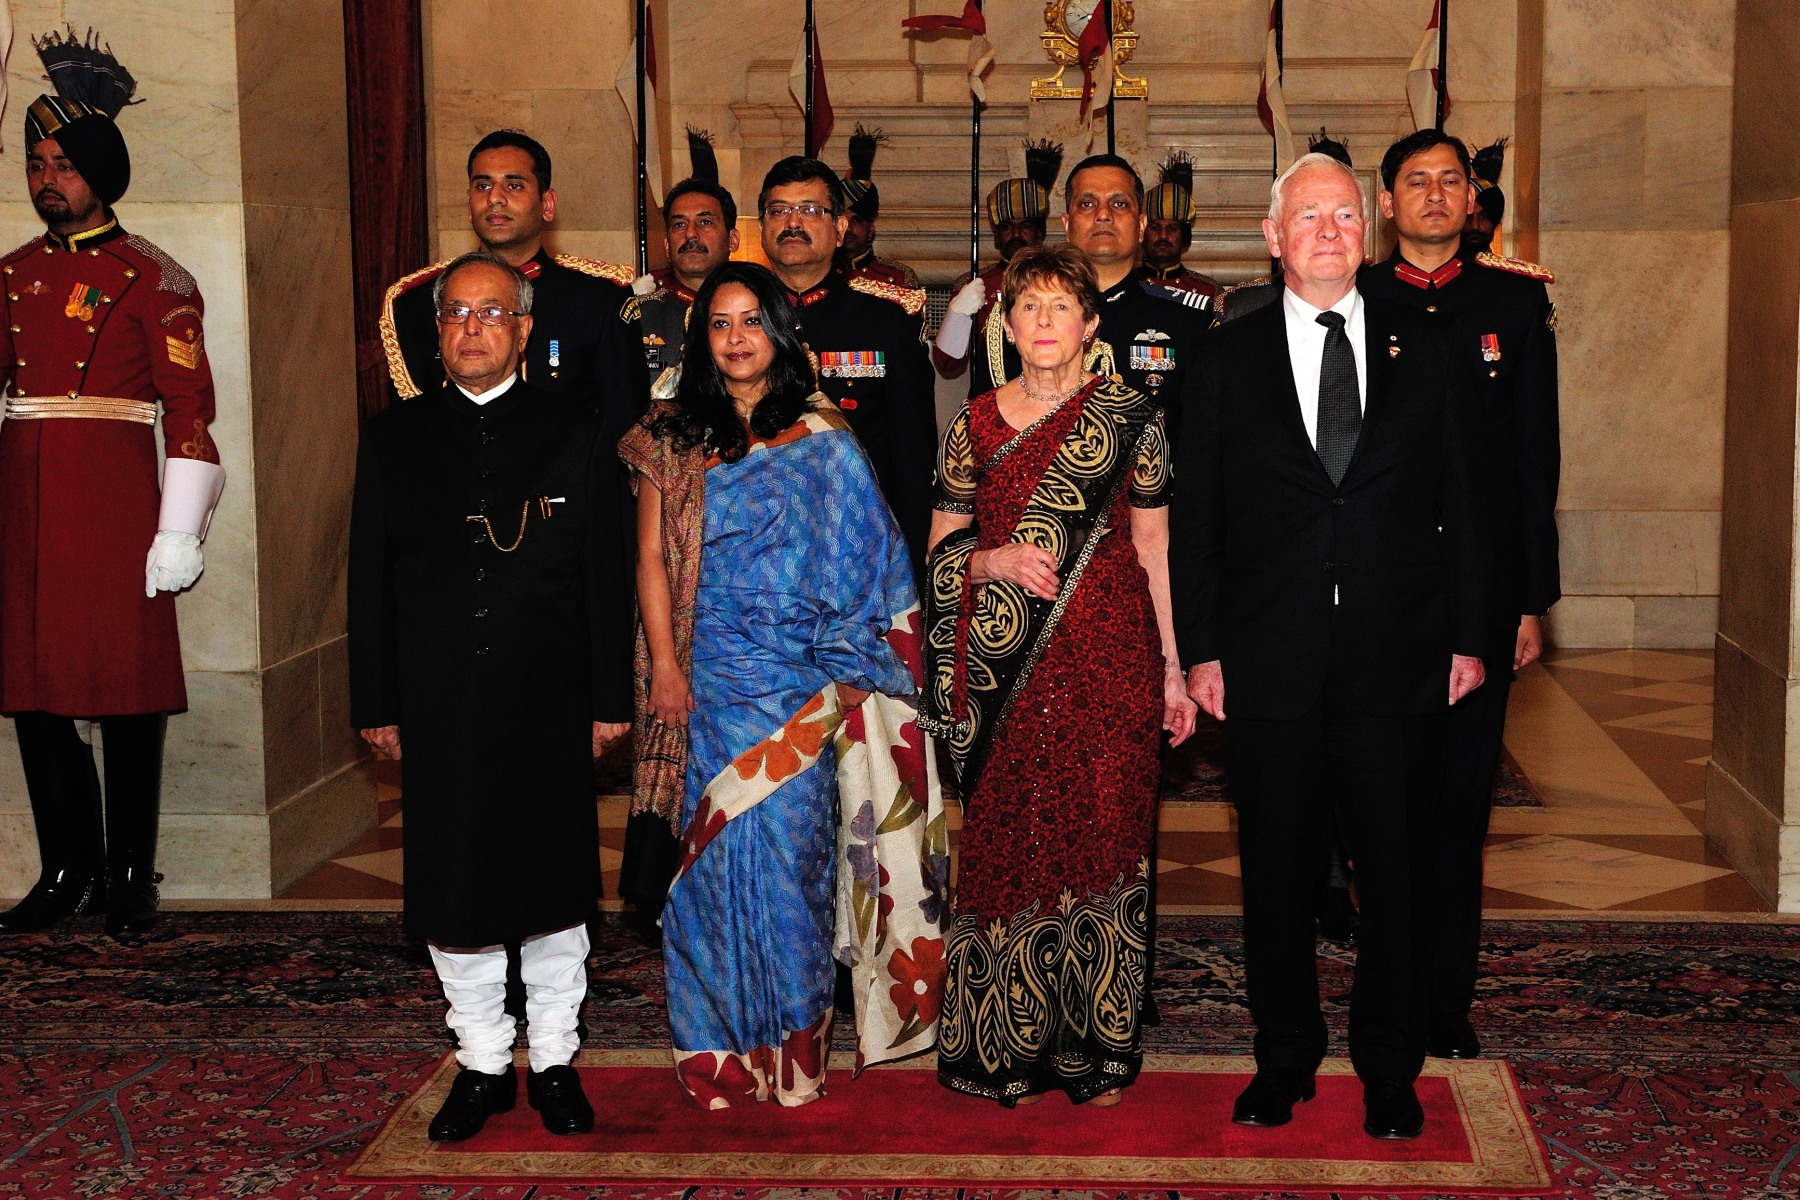 In the evening, Their Excellencies attended a State dinner hosted by the President of the Republic of India.